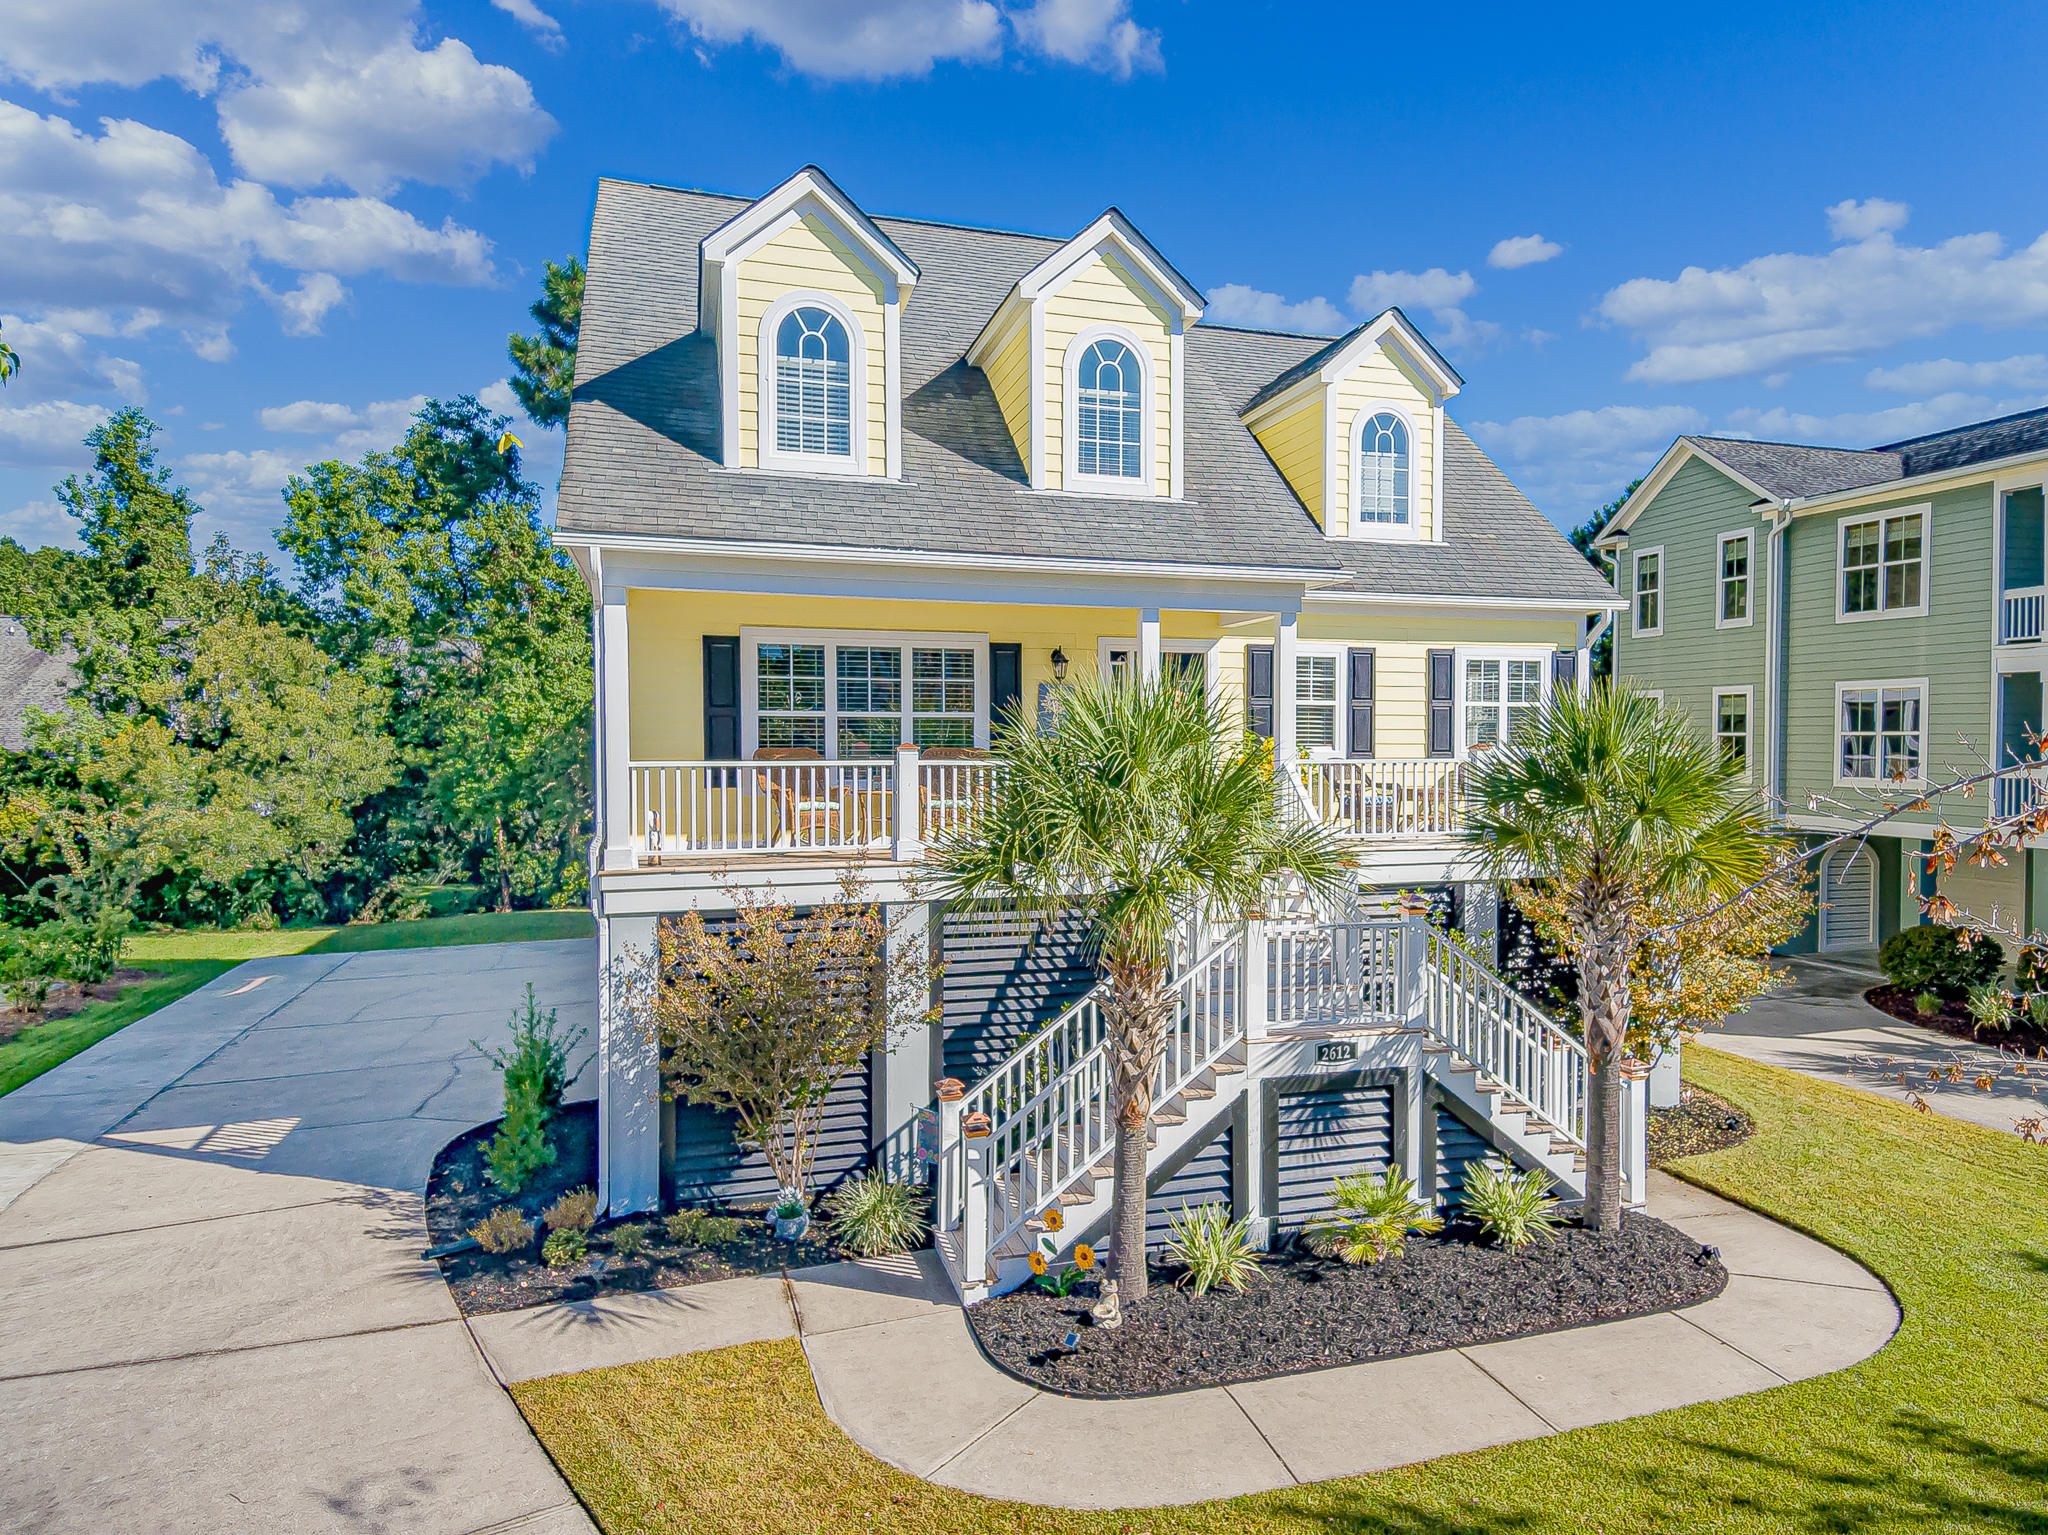 Rivertowne On The Wando Homes For Sale - 2612 Alderly, Mount Pleasant, SC - 40